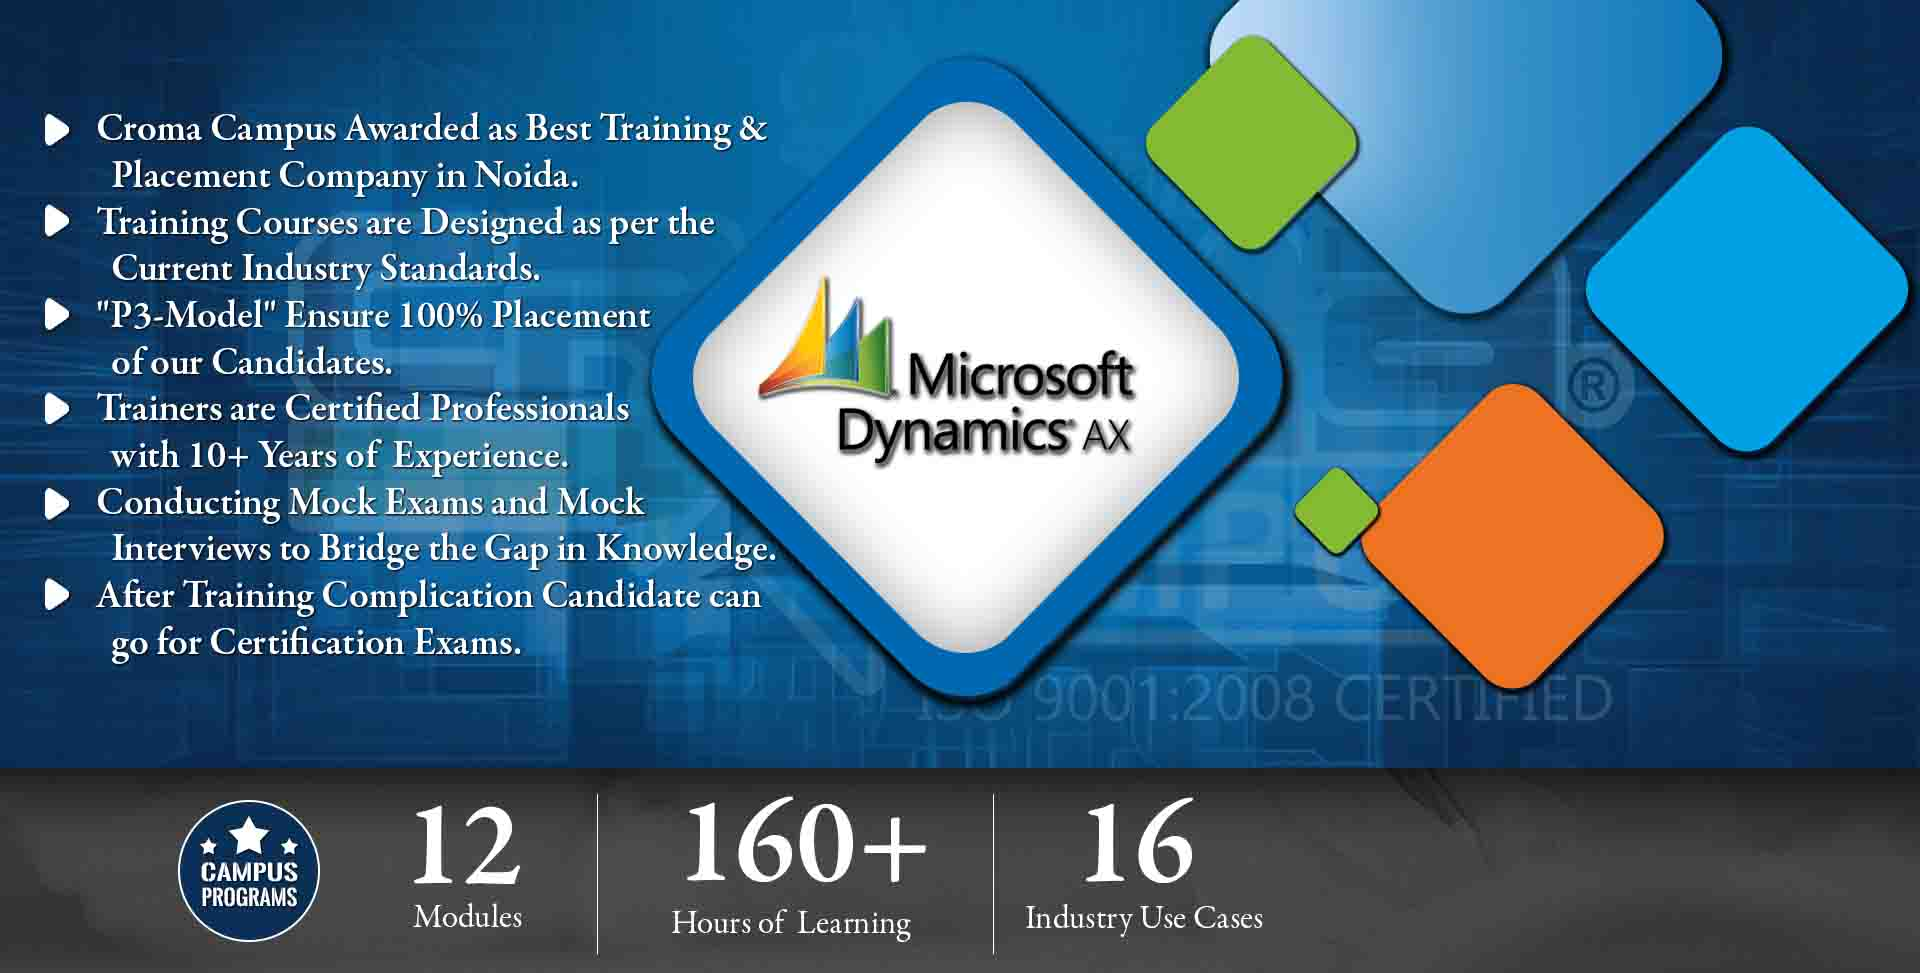 Microsoft Dynamics Ax Training In Noida Croma Campus